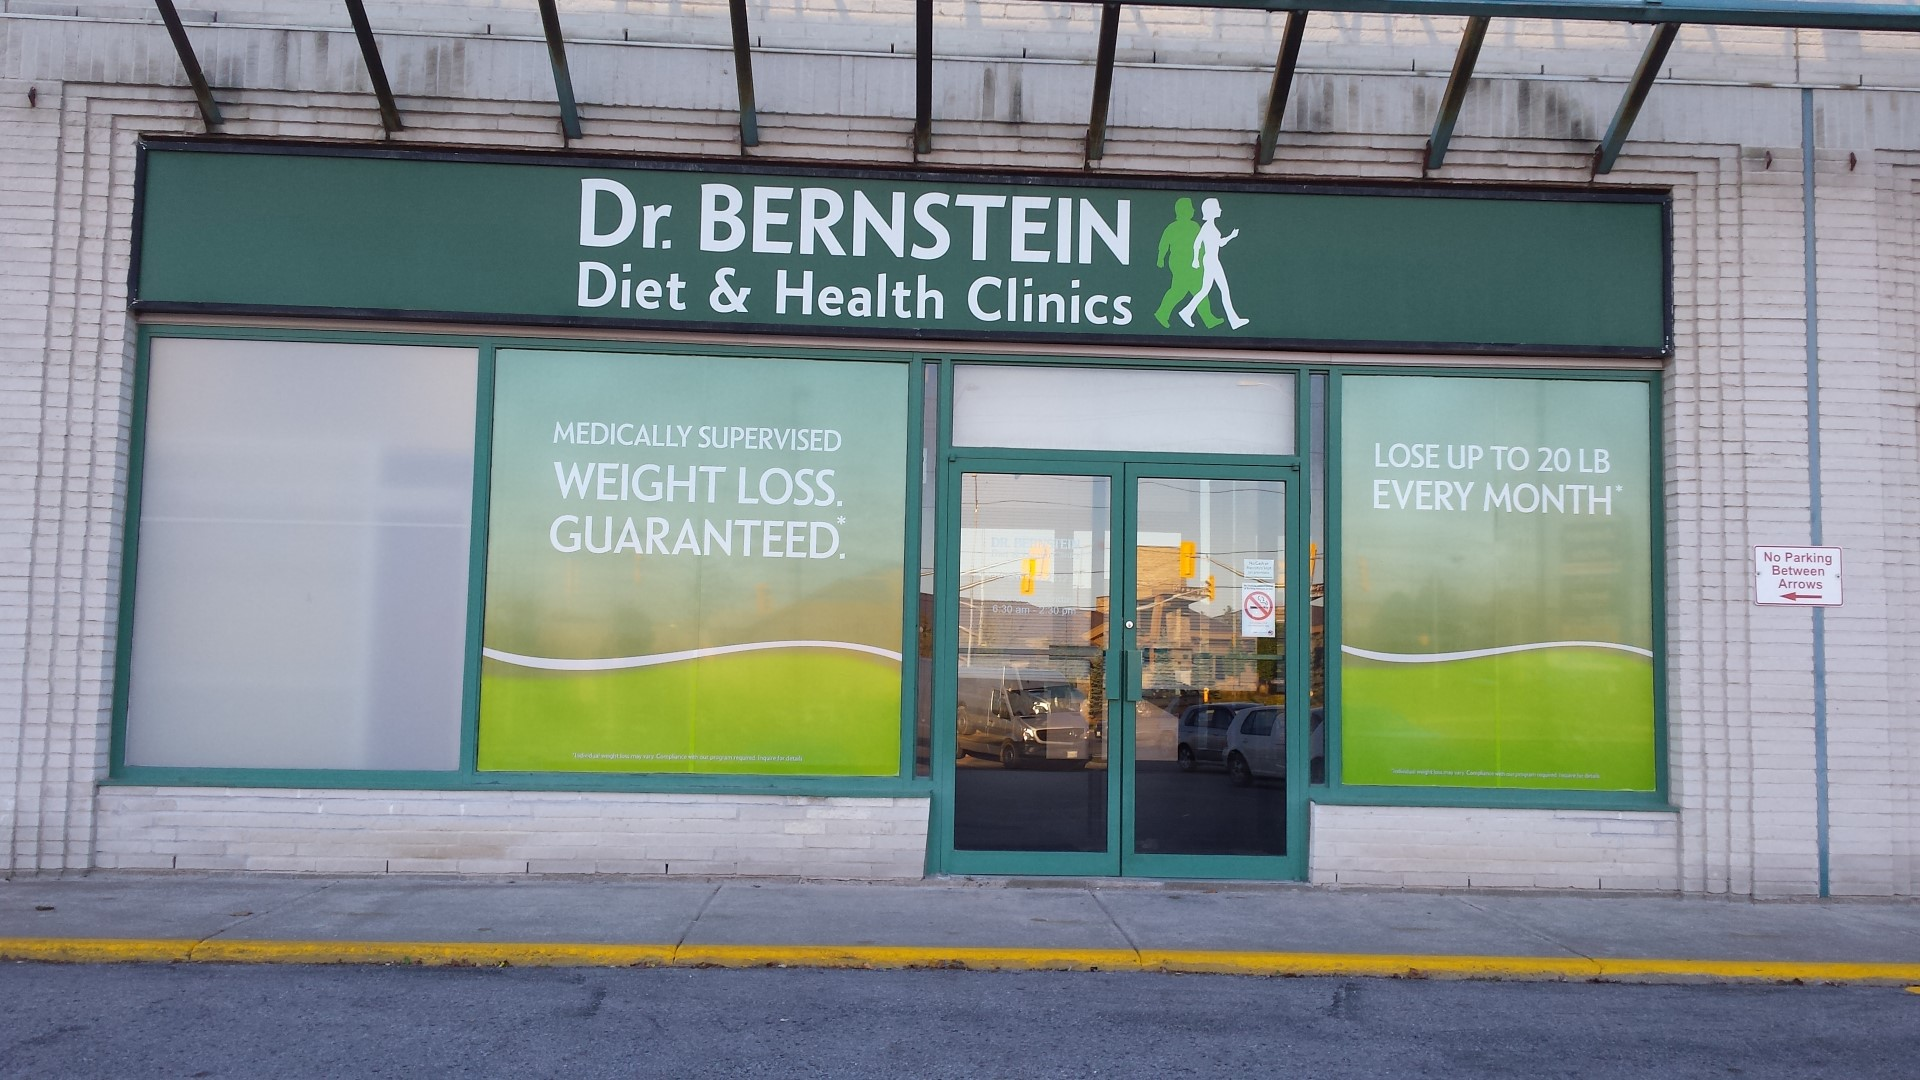 Dr. Bernstein Weight Loss & Diet Clinic, Peterborough, Ontario